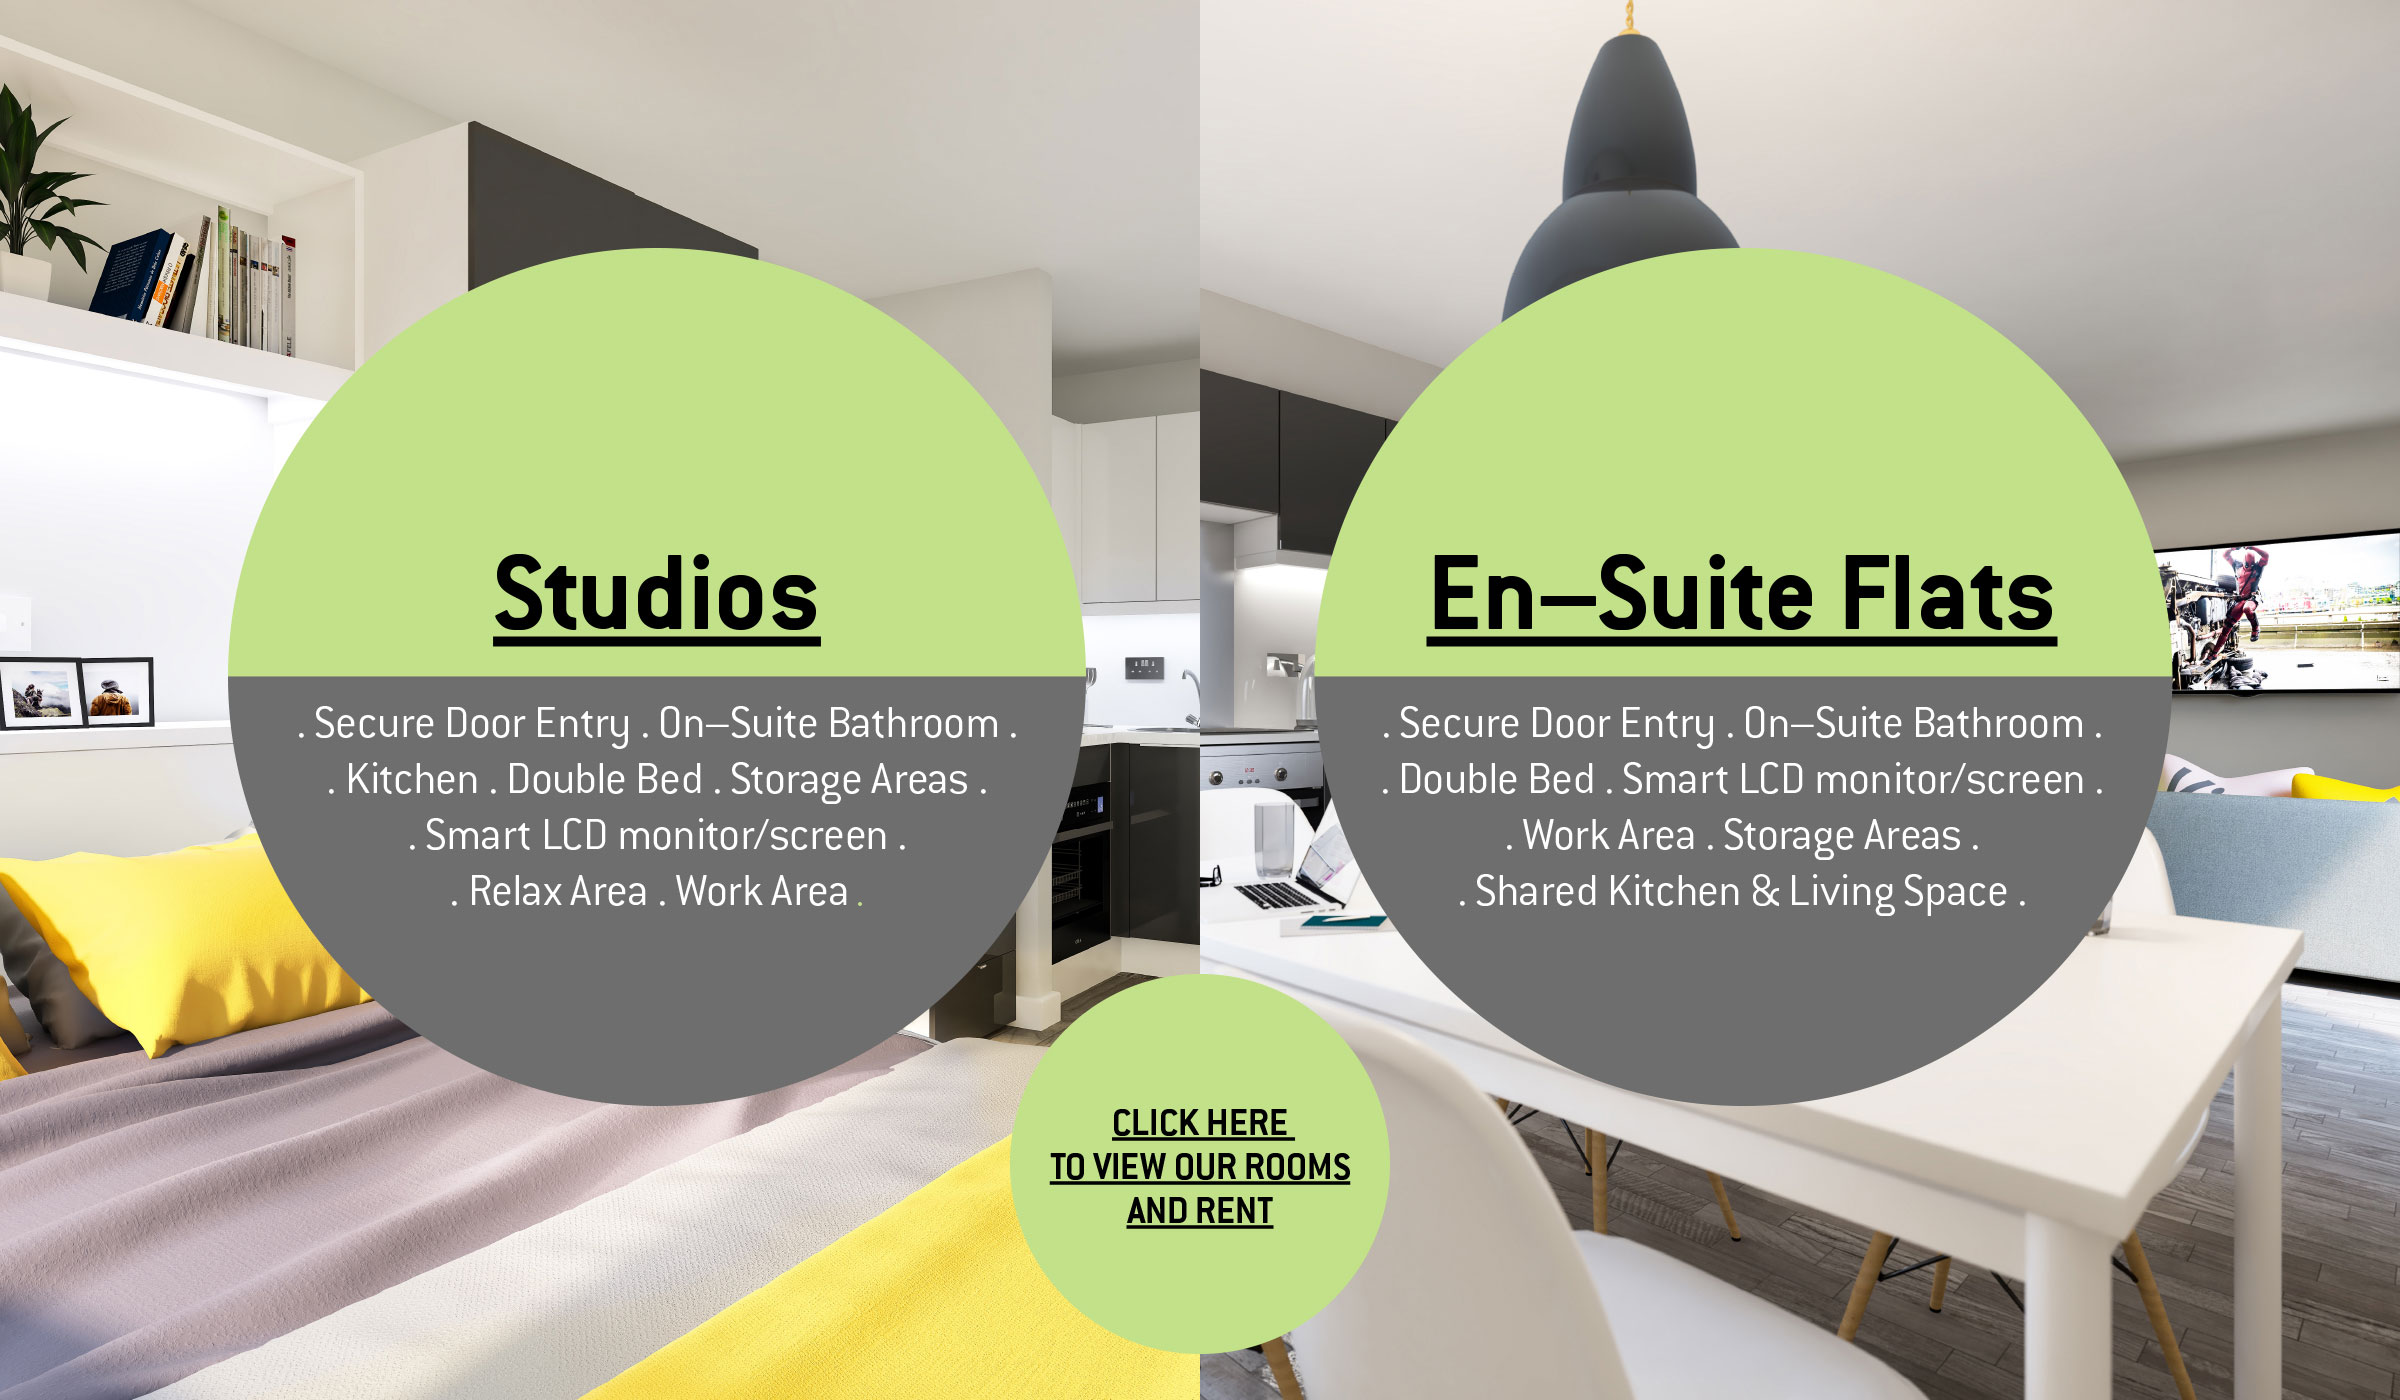 Vibe Student Living accommodation studios and en-suite